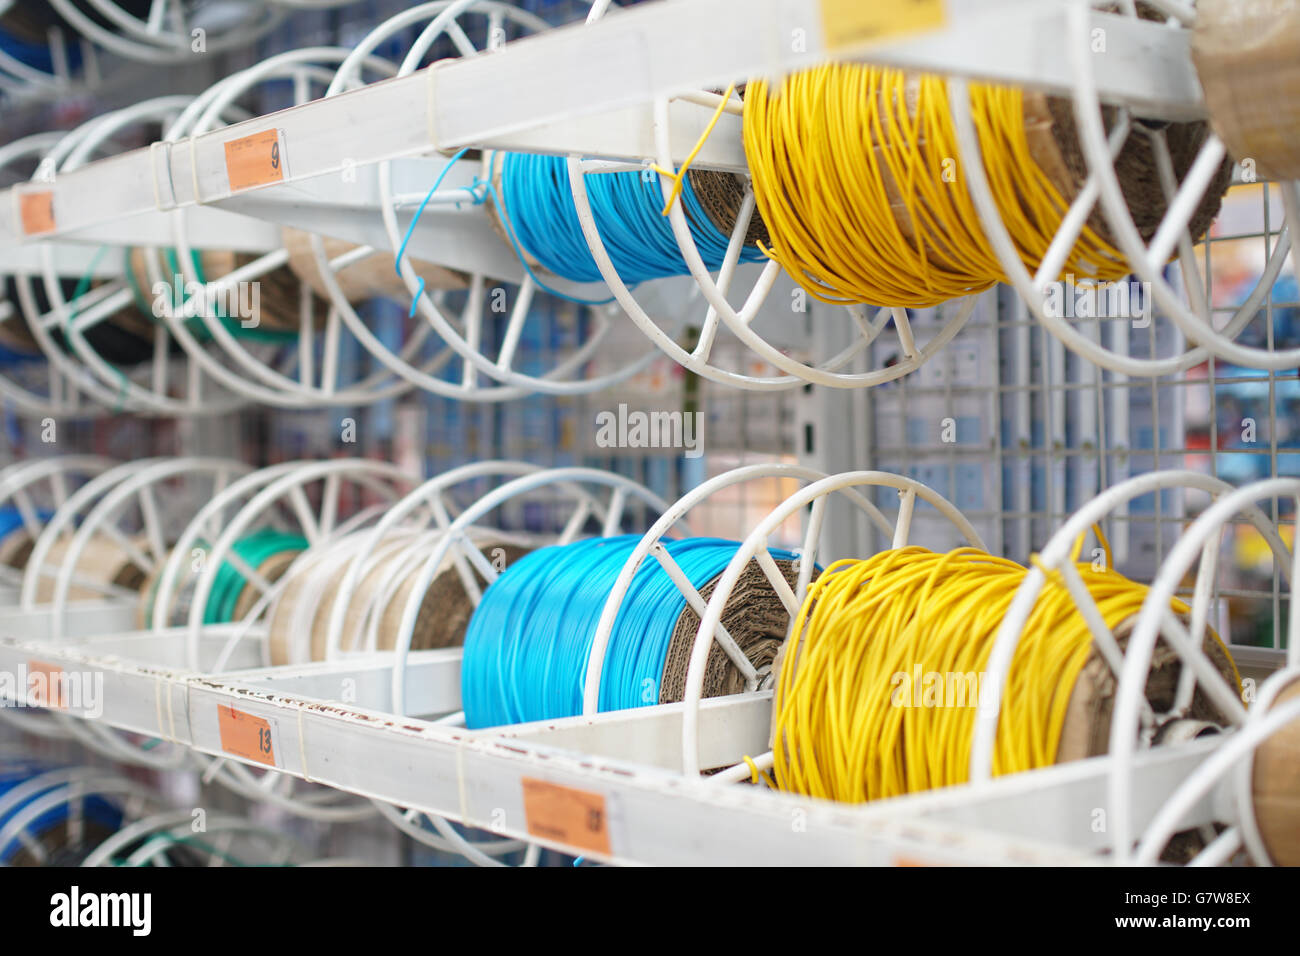 Fiber Optic Cable Reel Stock Photos Electronics Electricity Gt Optical Wire Power Spools In Store For Sales Image